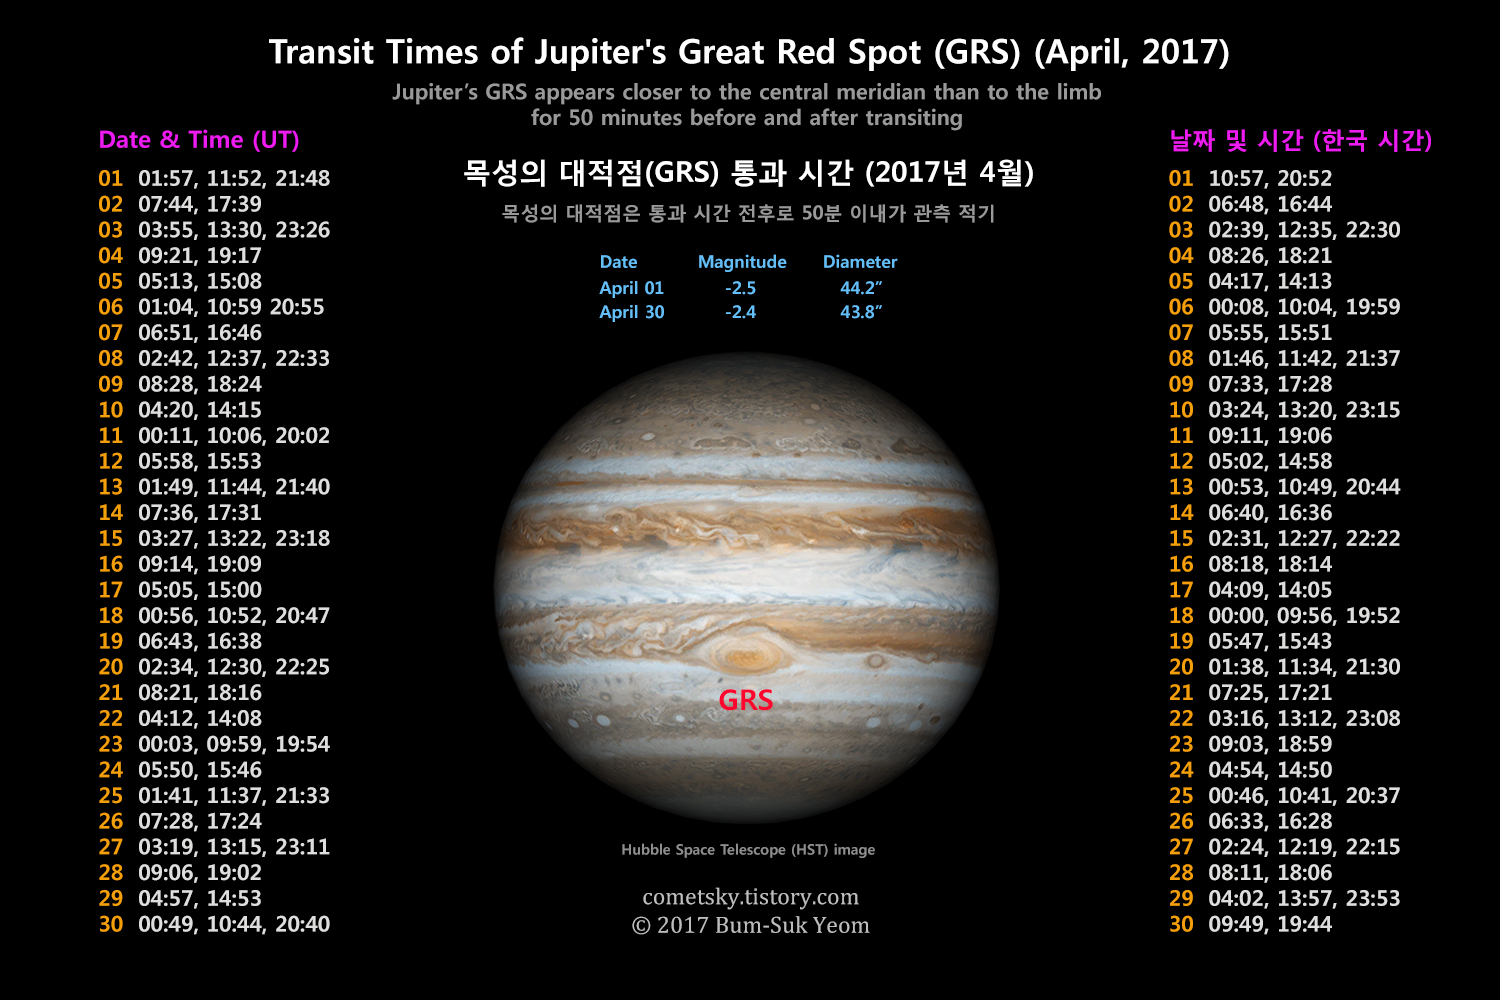 transit_times_of_jupiter_grs_april_2017_new_web_bsyeom.jpg